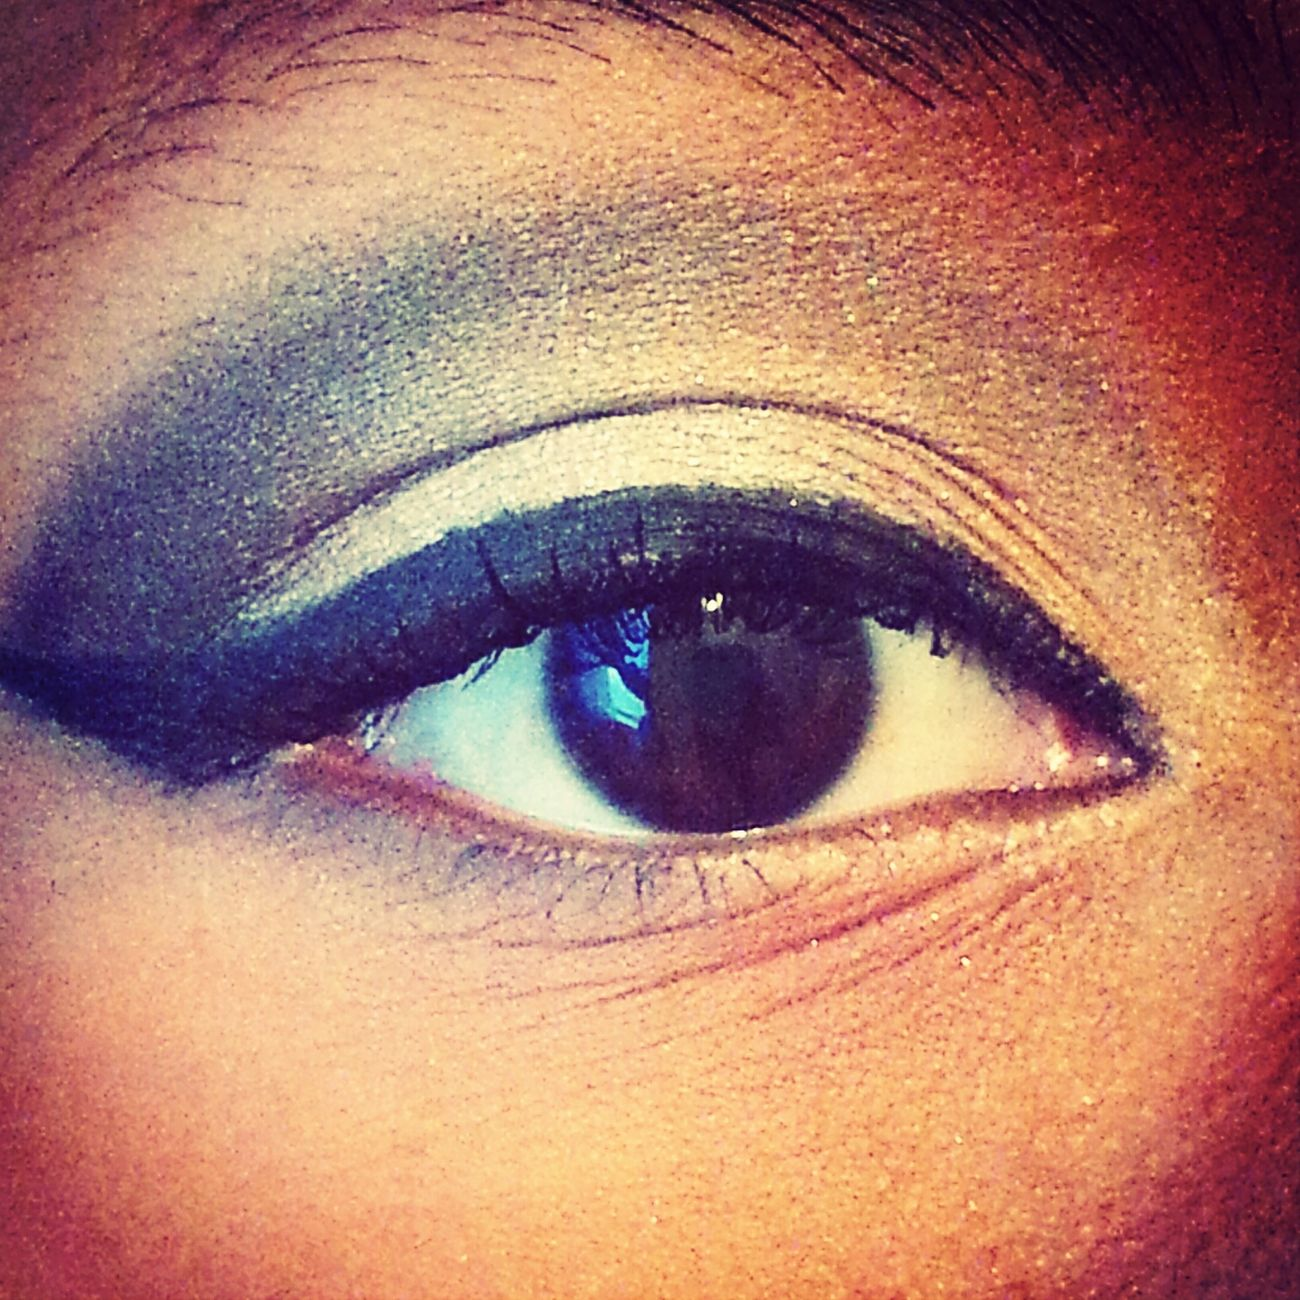 practicing my eyeshadow make-up skills. im a beginner so yeah. Make-up Eyeshadow Practicing Beginner